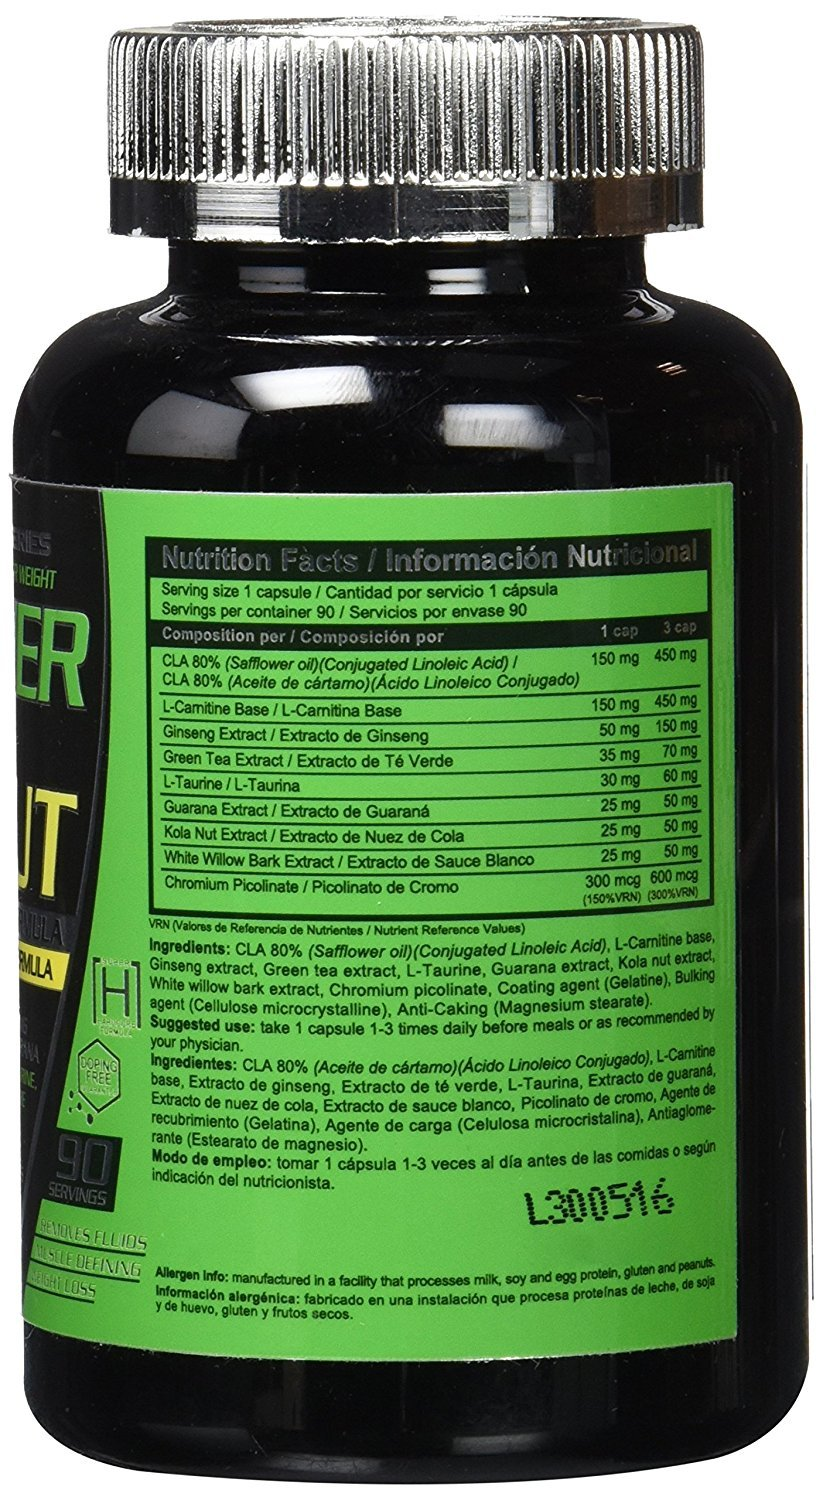 Amazon.com: Beverly Nutrition Exclusive For ABSat40 Burner & H2Out - fat burner and diuretic - convert excess fat into energy - improves the physical ...